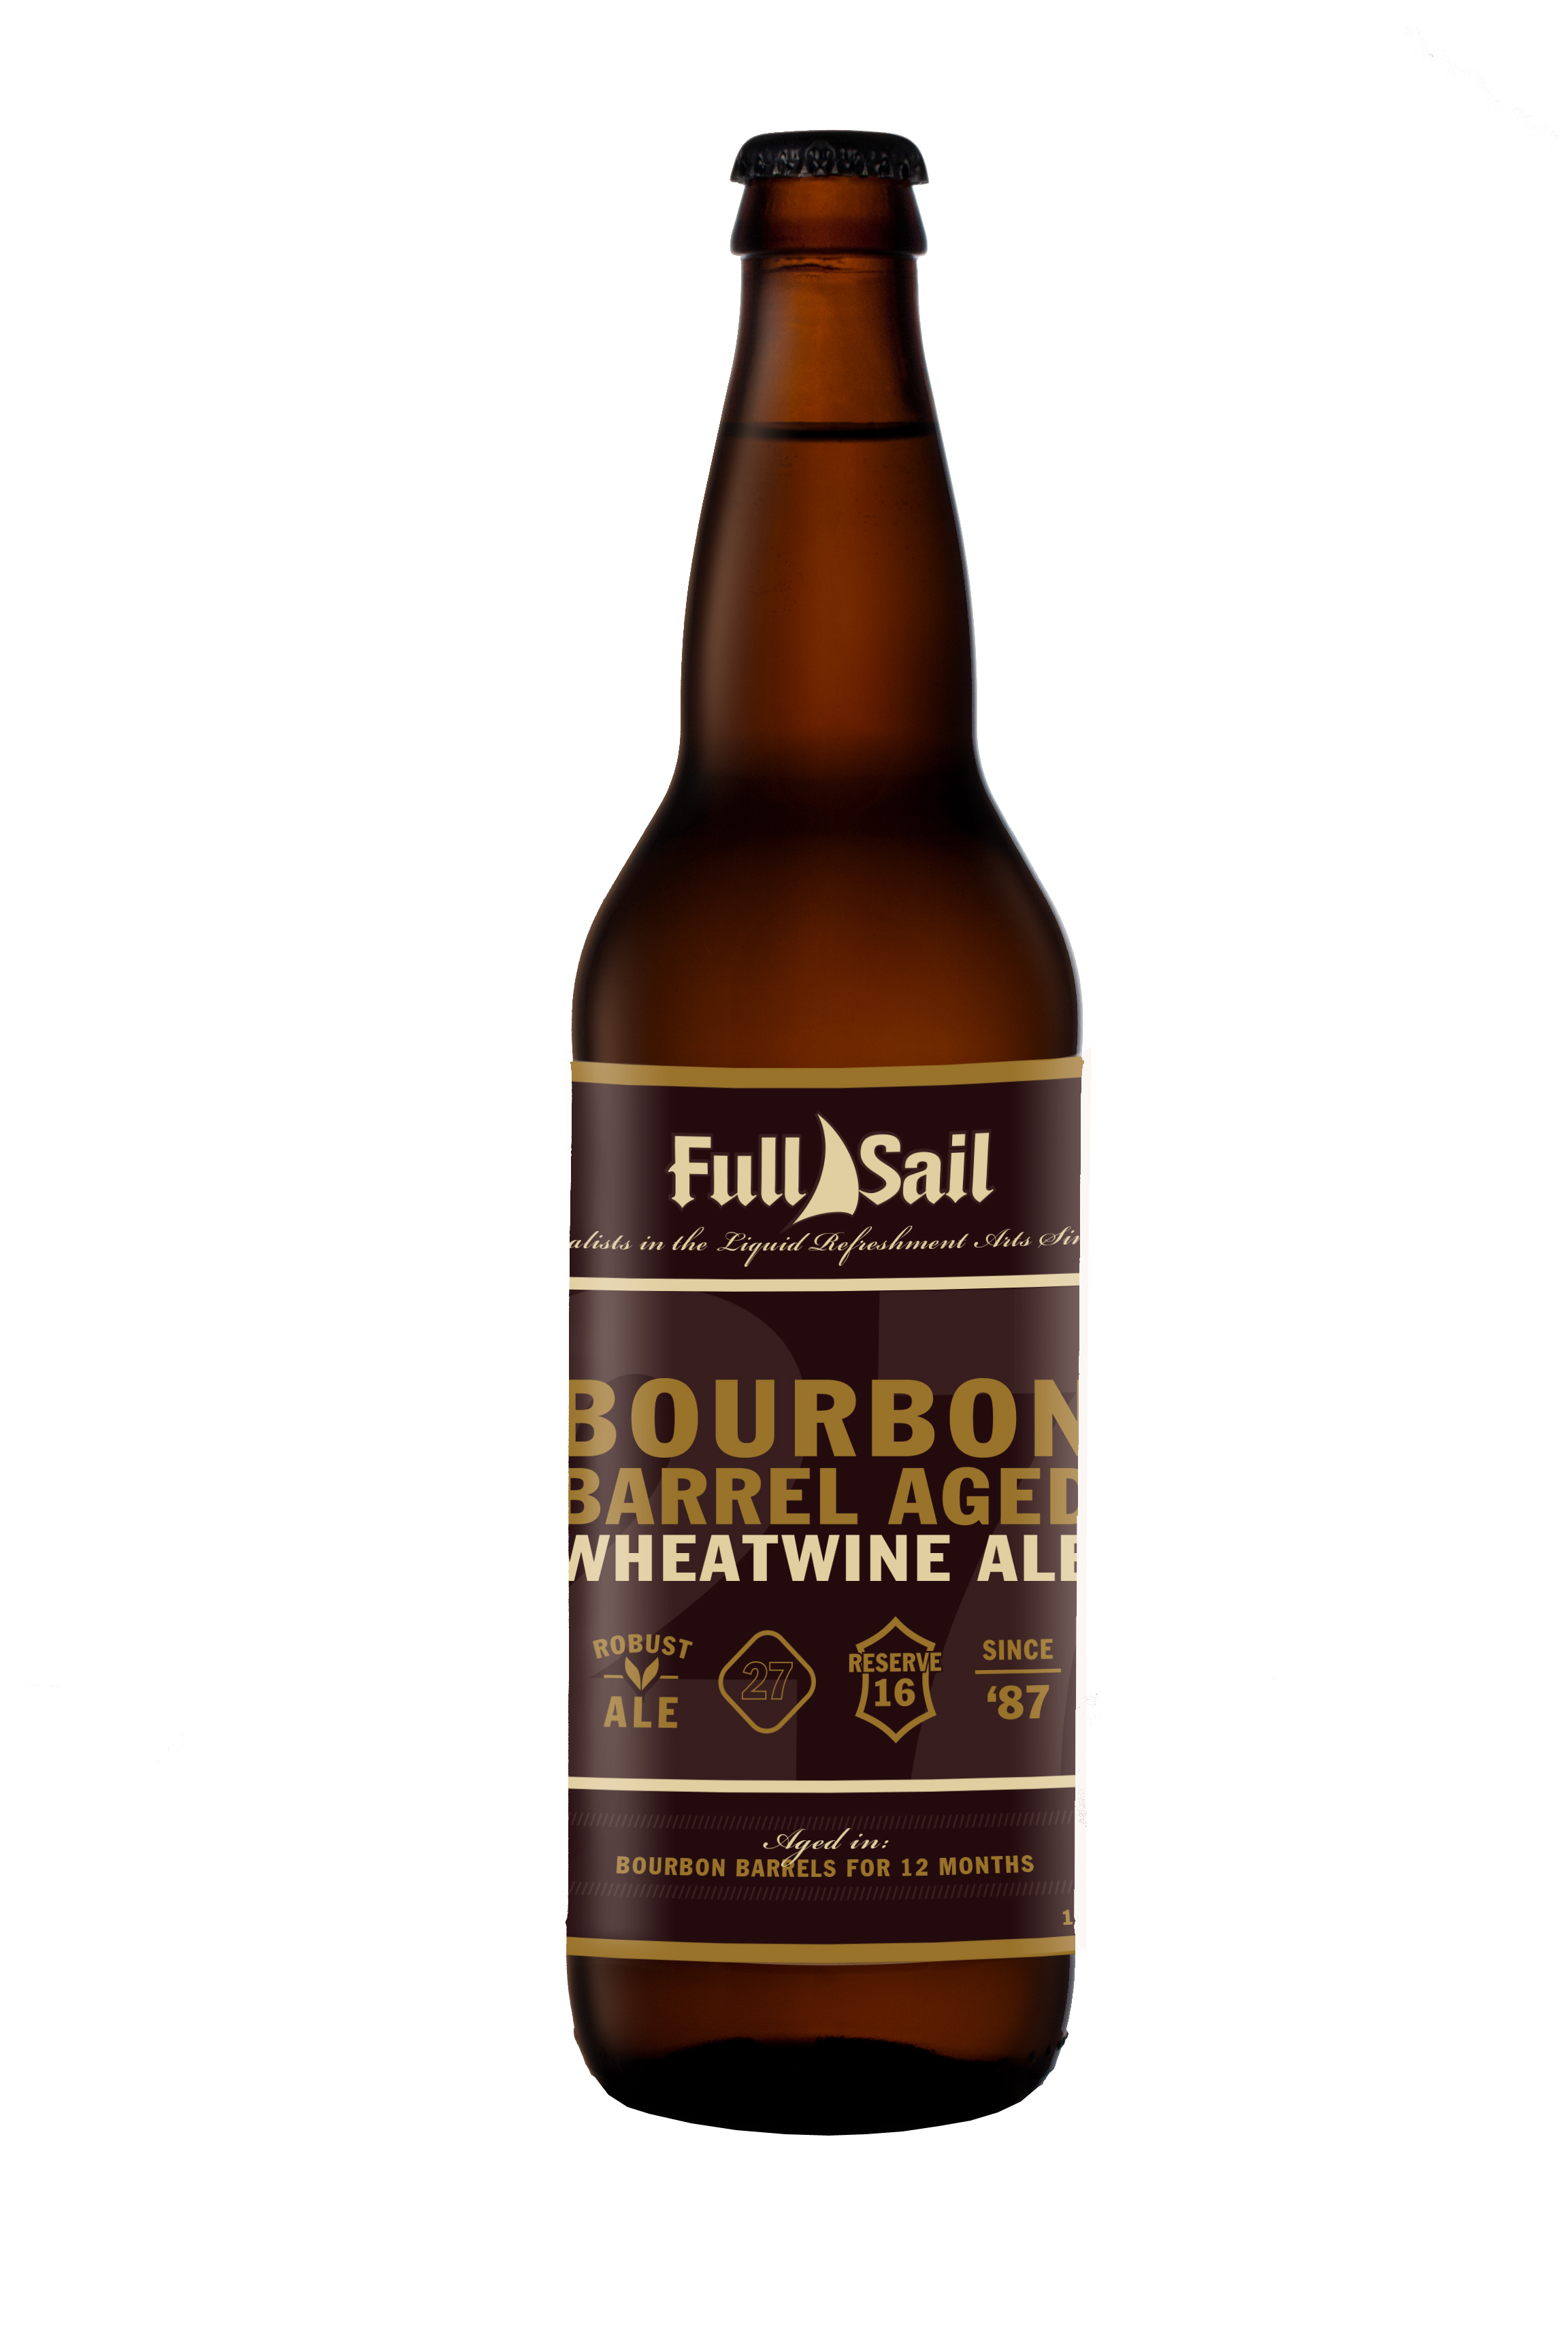 Full Sail Bourbon Barrel Aged Wheatwine Ale Bottle (image courtesy of Full Sail Brewing)